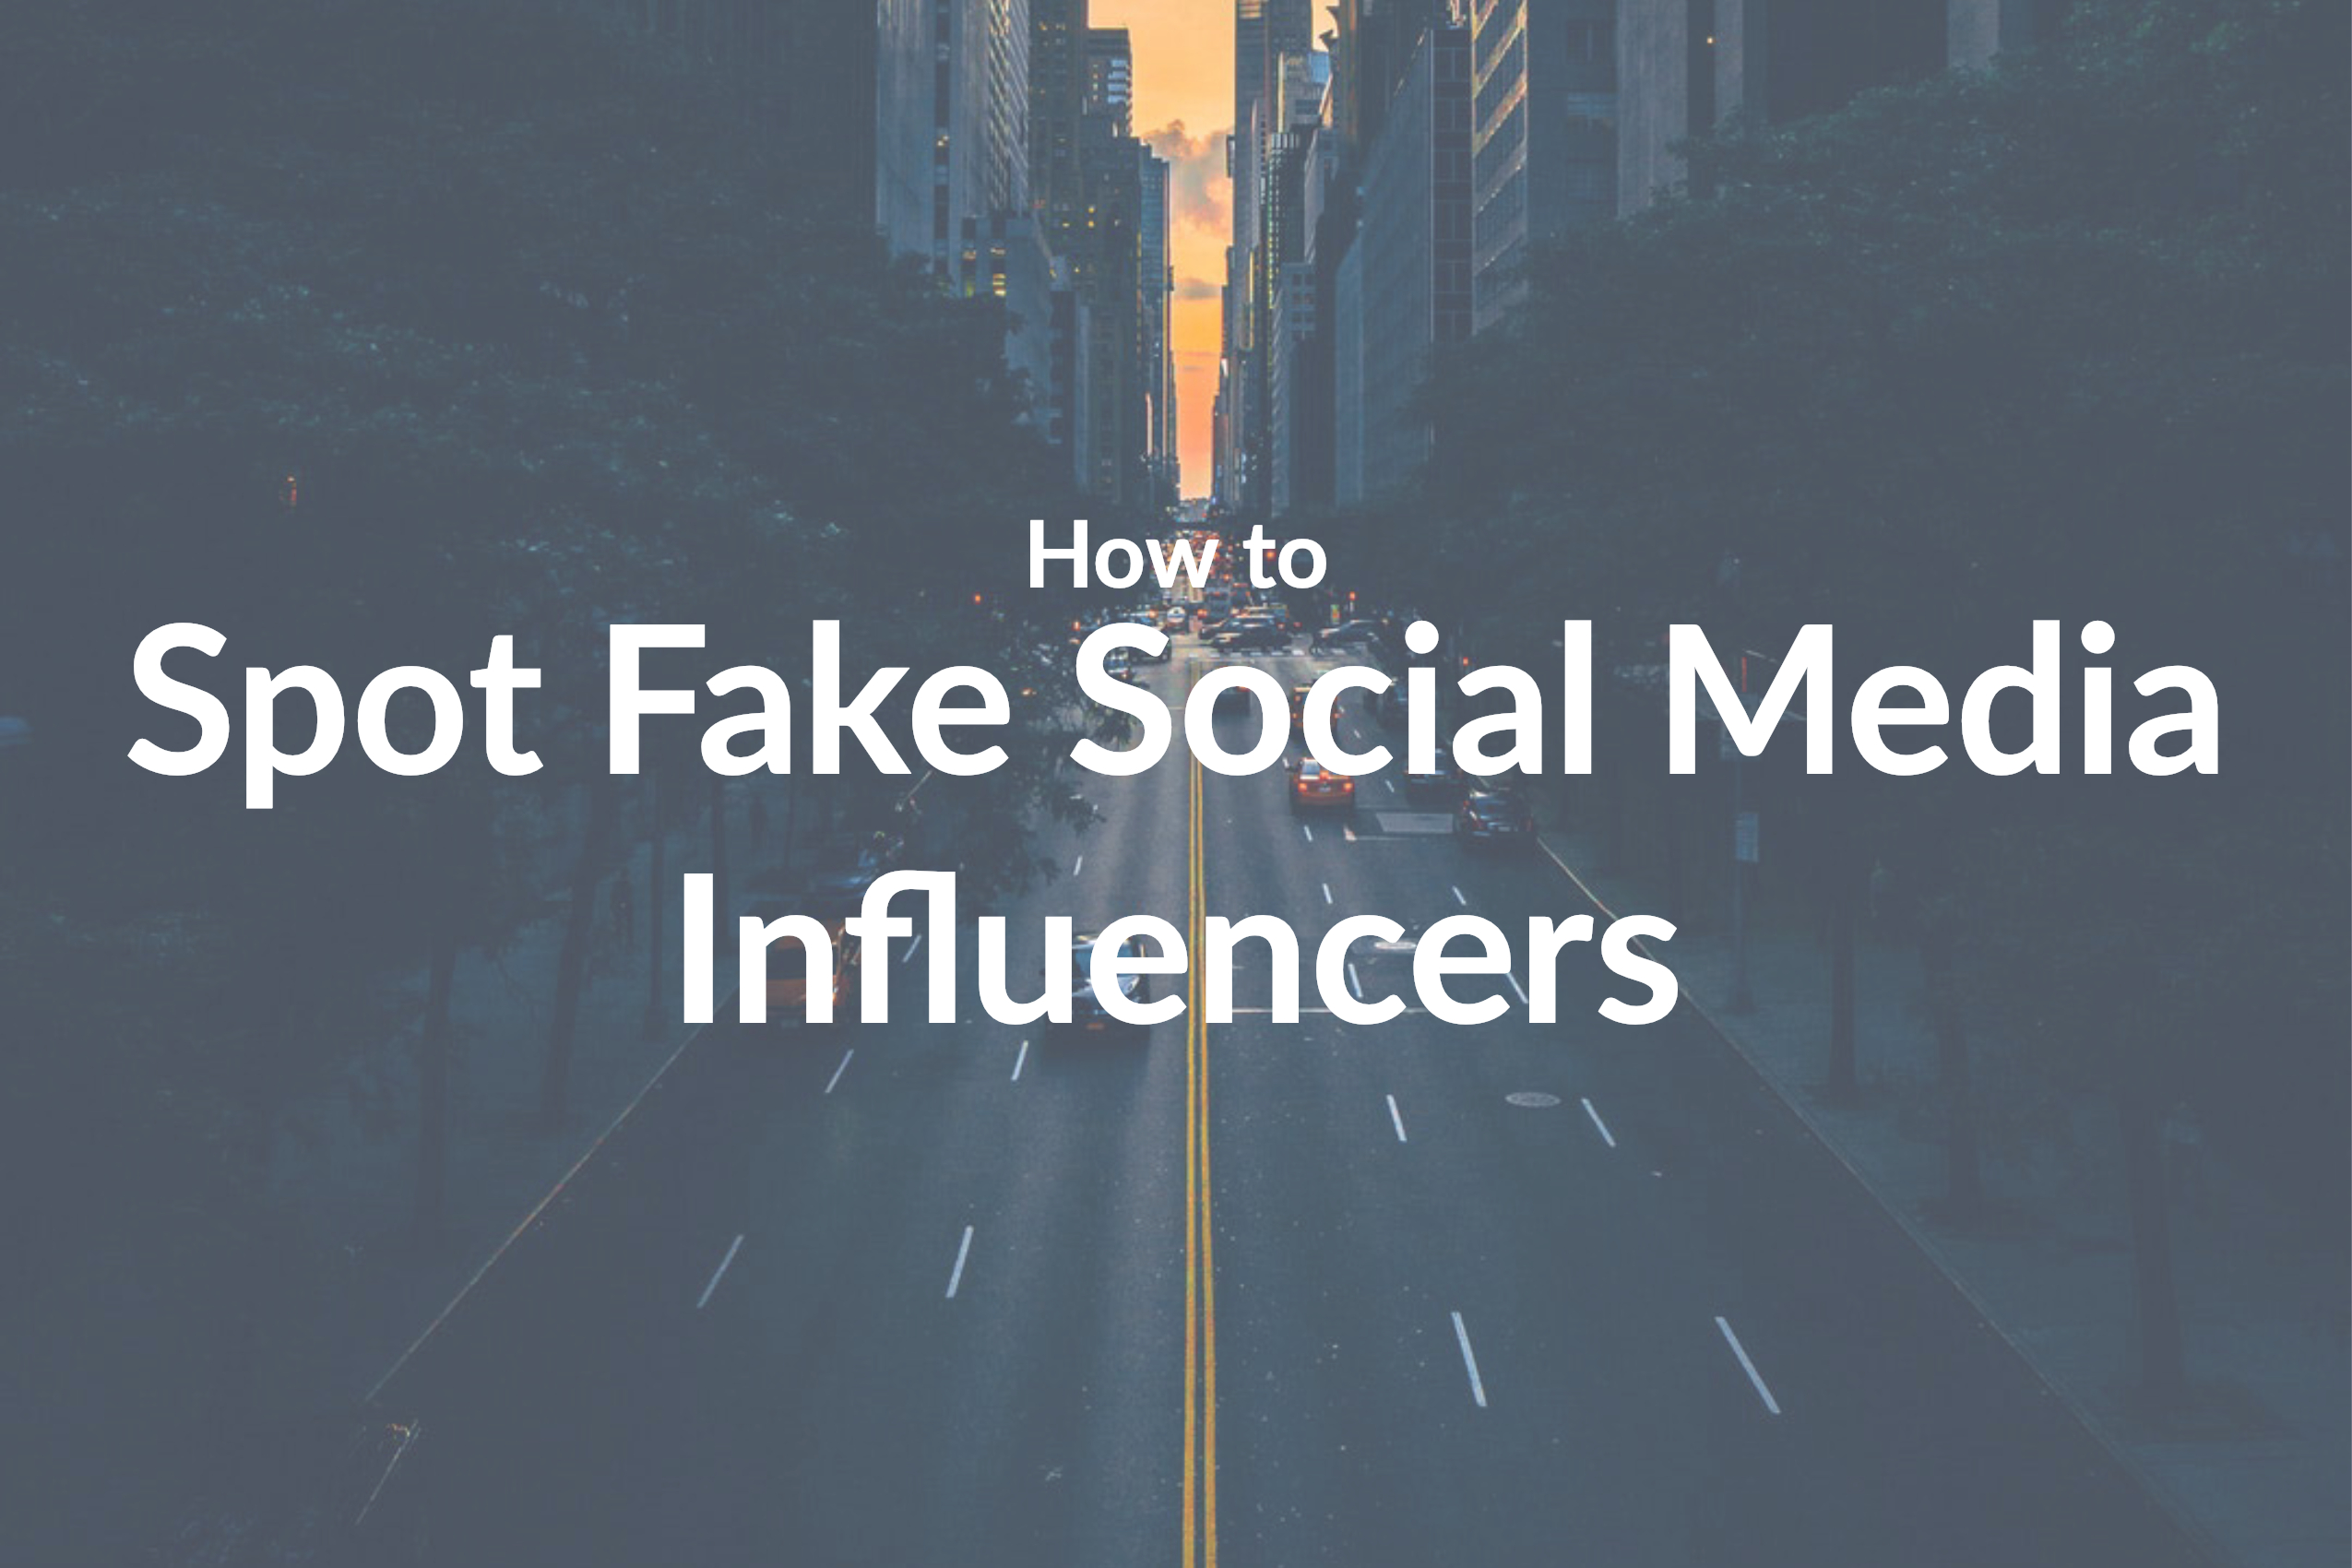 How to Spot Fake Social Media Influencers